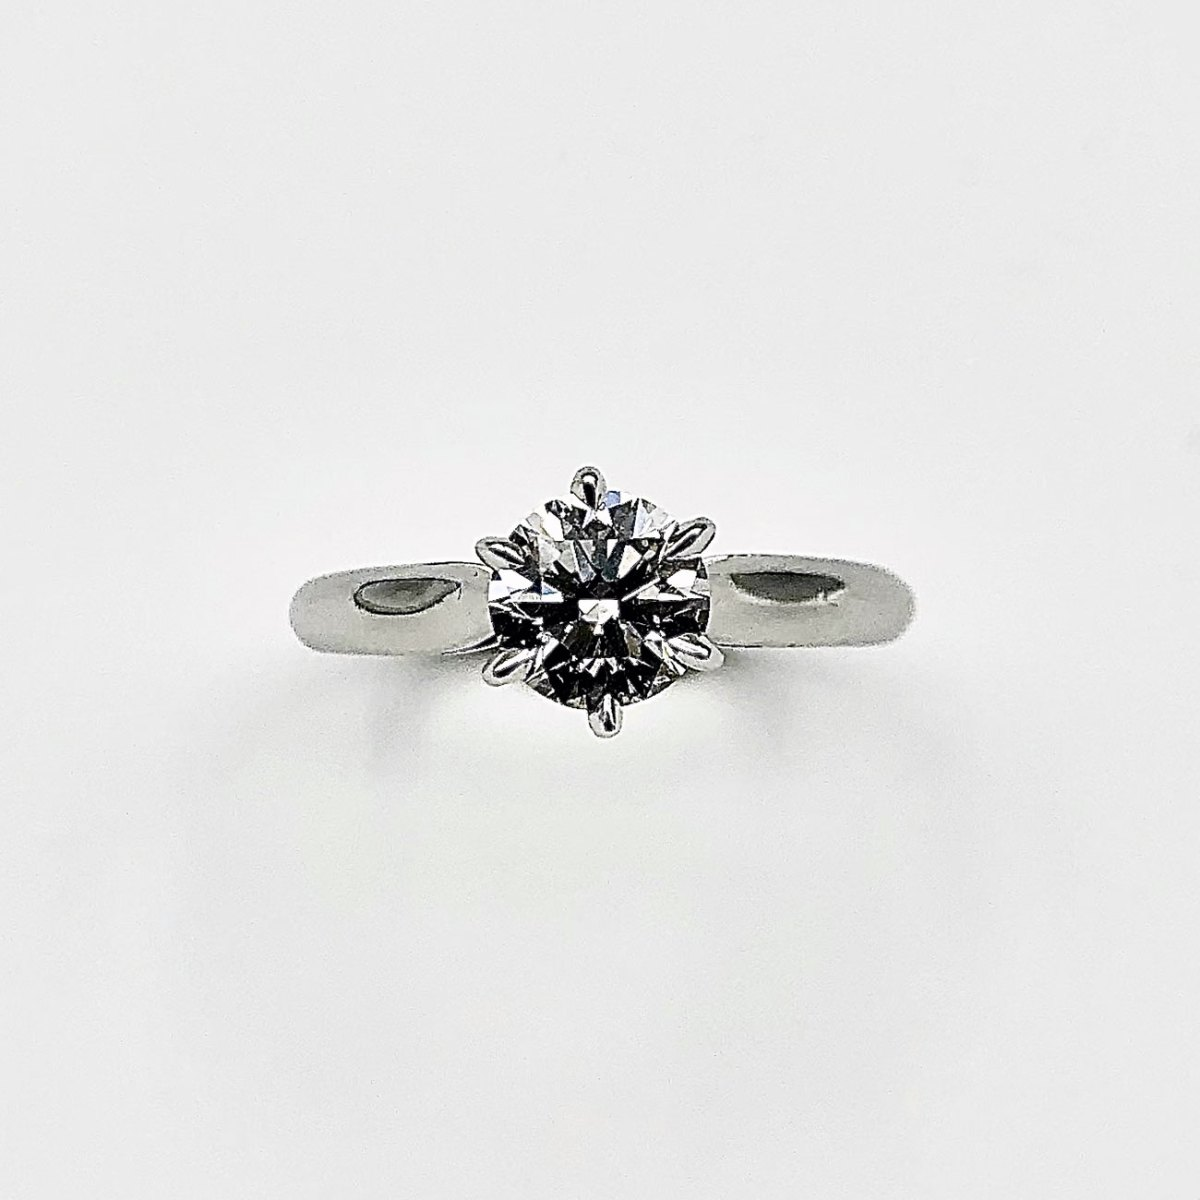 Diamond Solitaire Engagement Ring 1ct, 6 prong settings on 18K white gold, Size 7, ref. BA-A529 | EVENOR Jewellery • Brand new and vintage jewellery